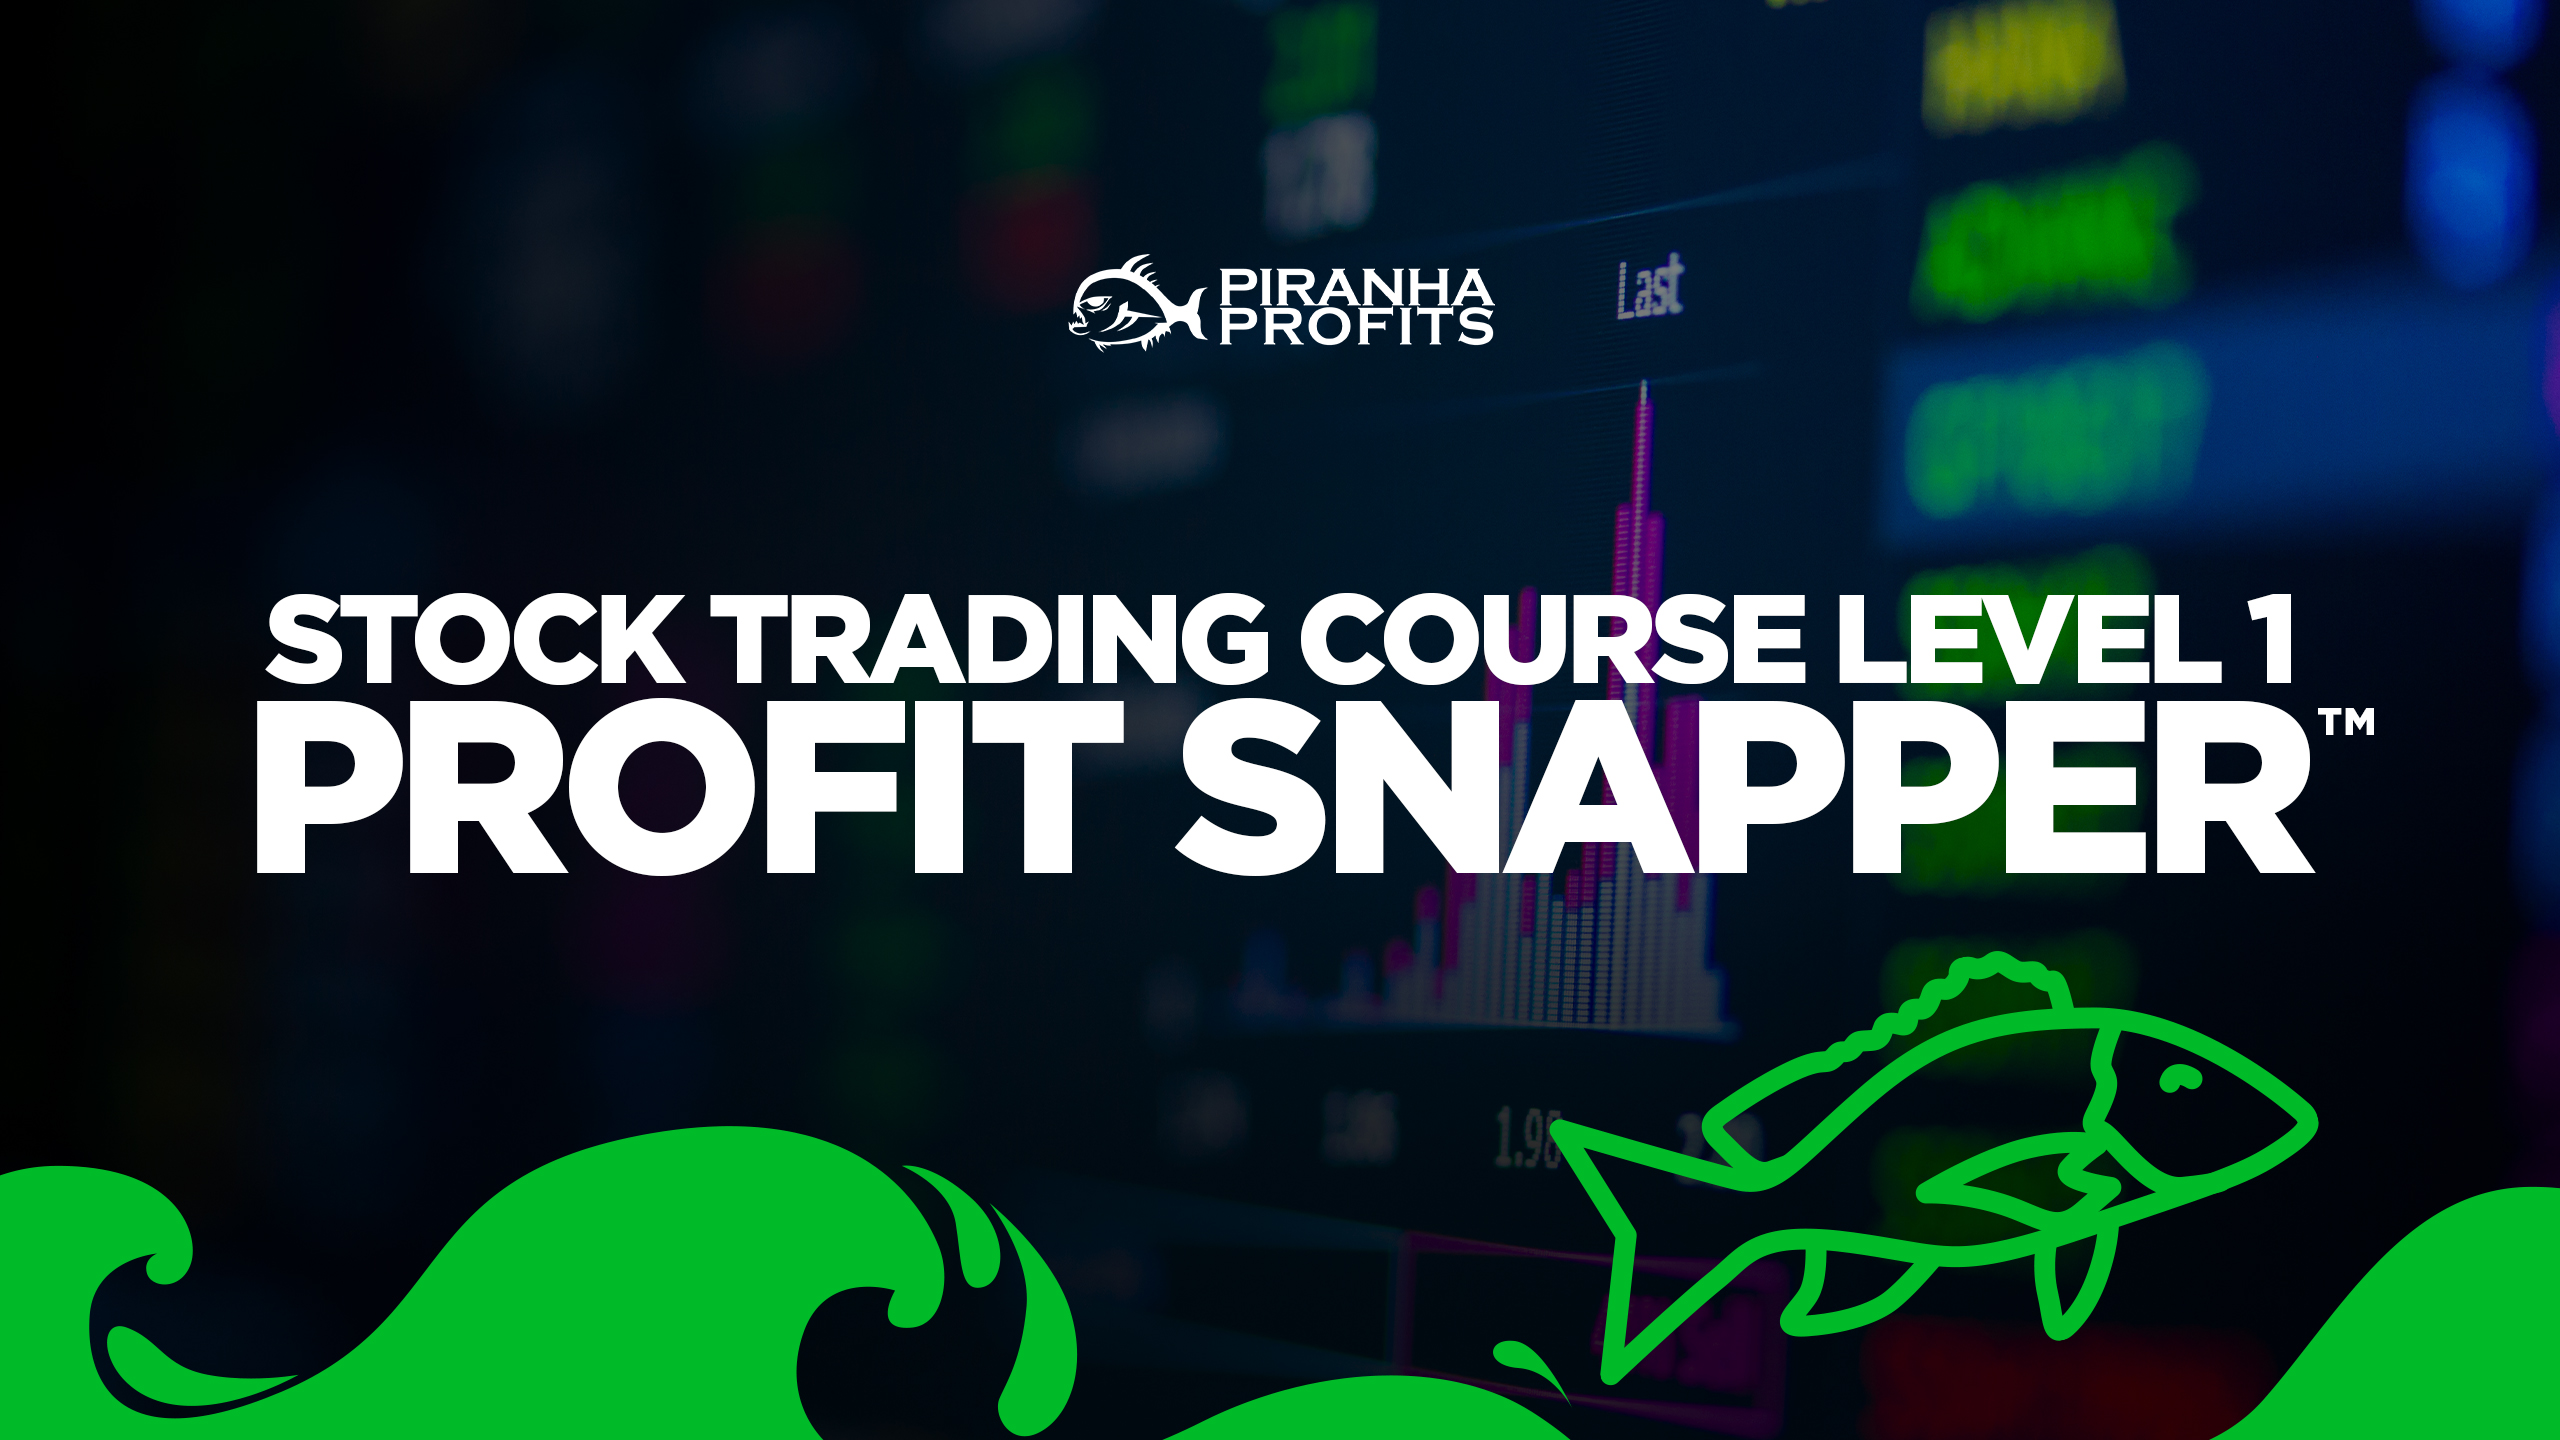 Online Stock Trading Course Level 1 Profit Snapper banner